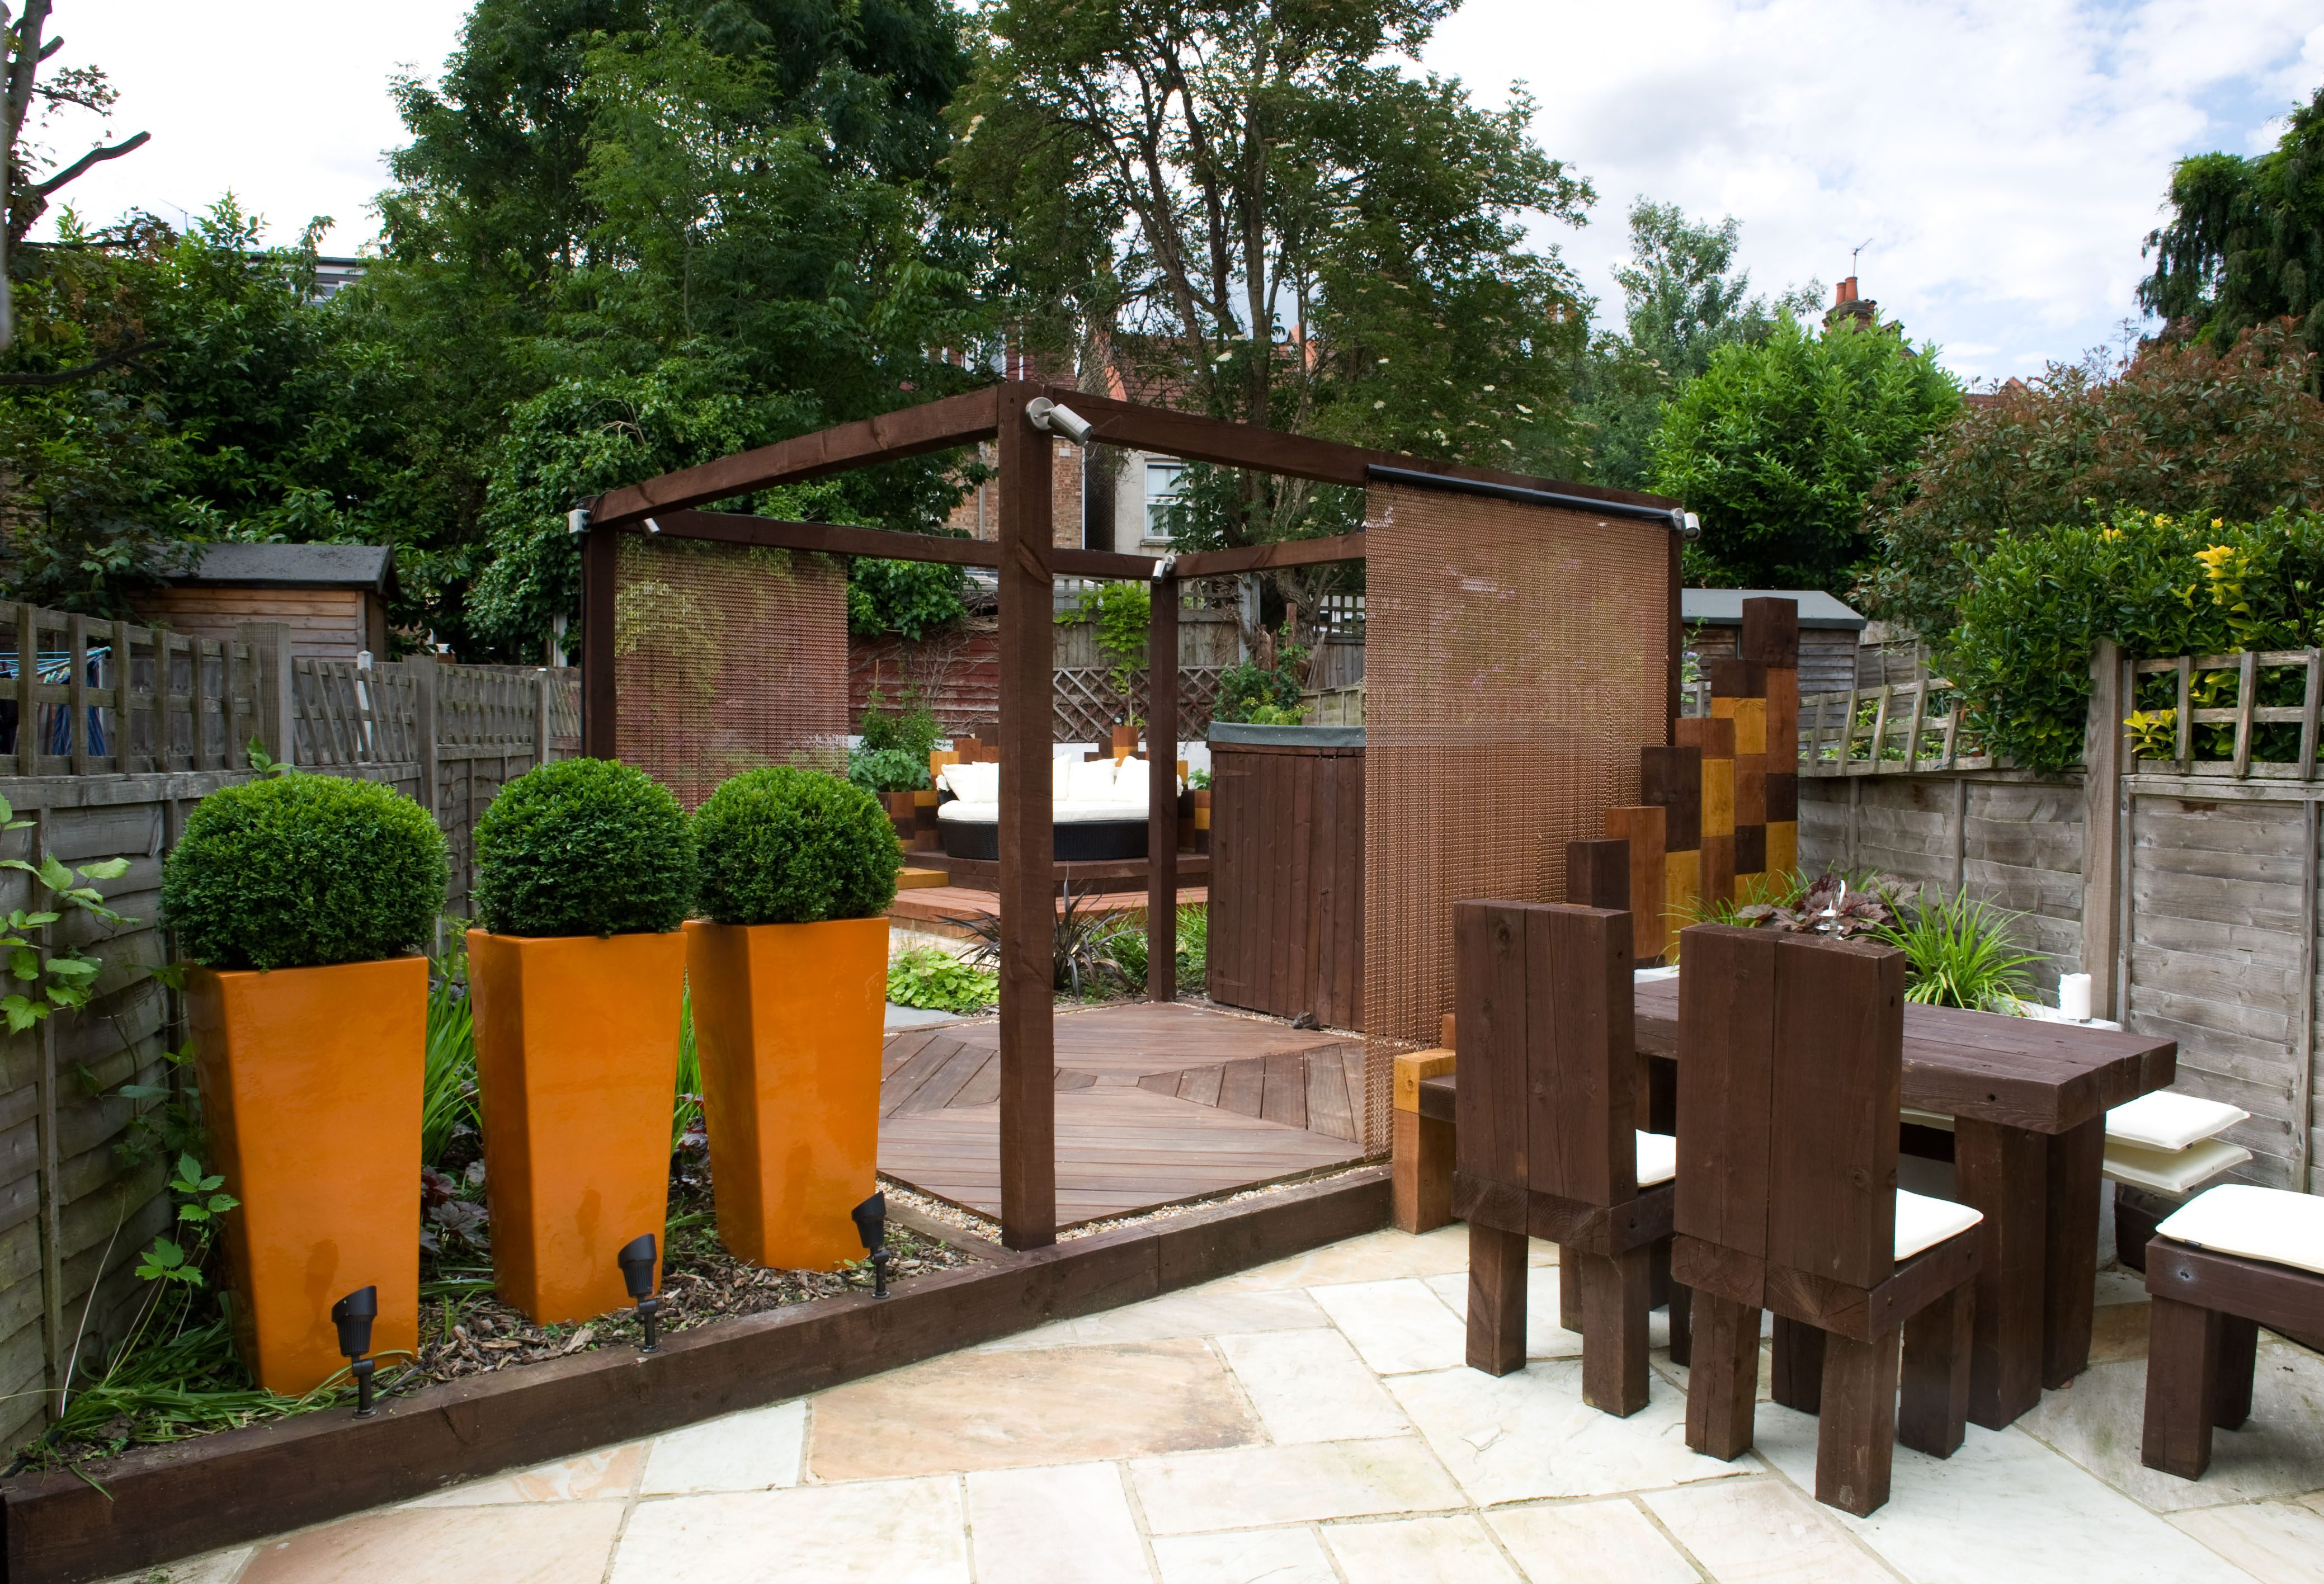 Big garden ideas, Small garden design space? - Creating ... on Landscape Garden Designs For Small Gardens id=39940